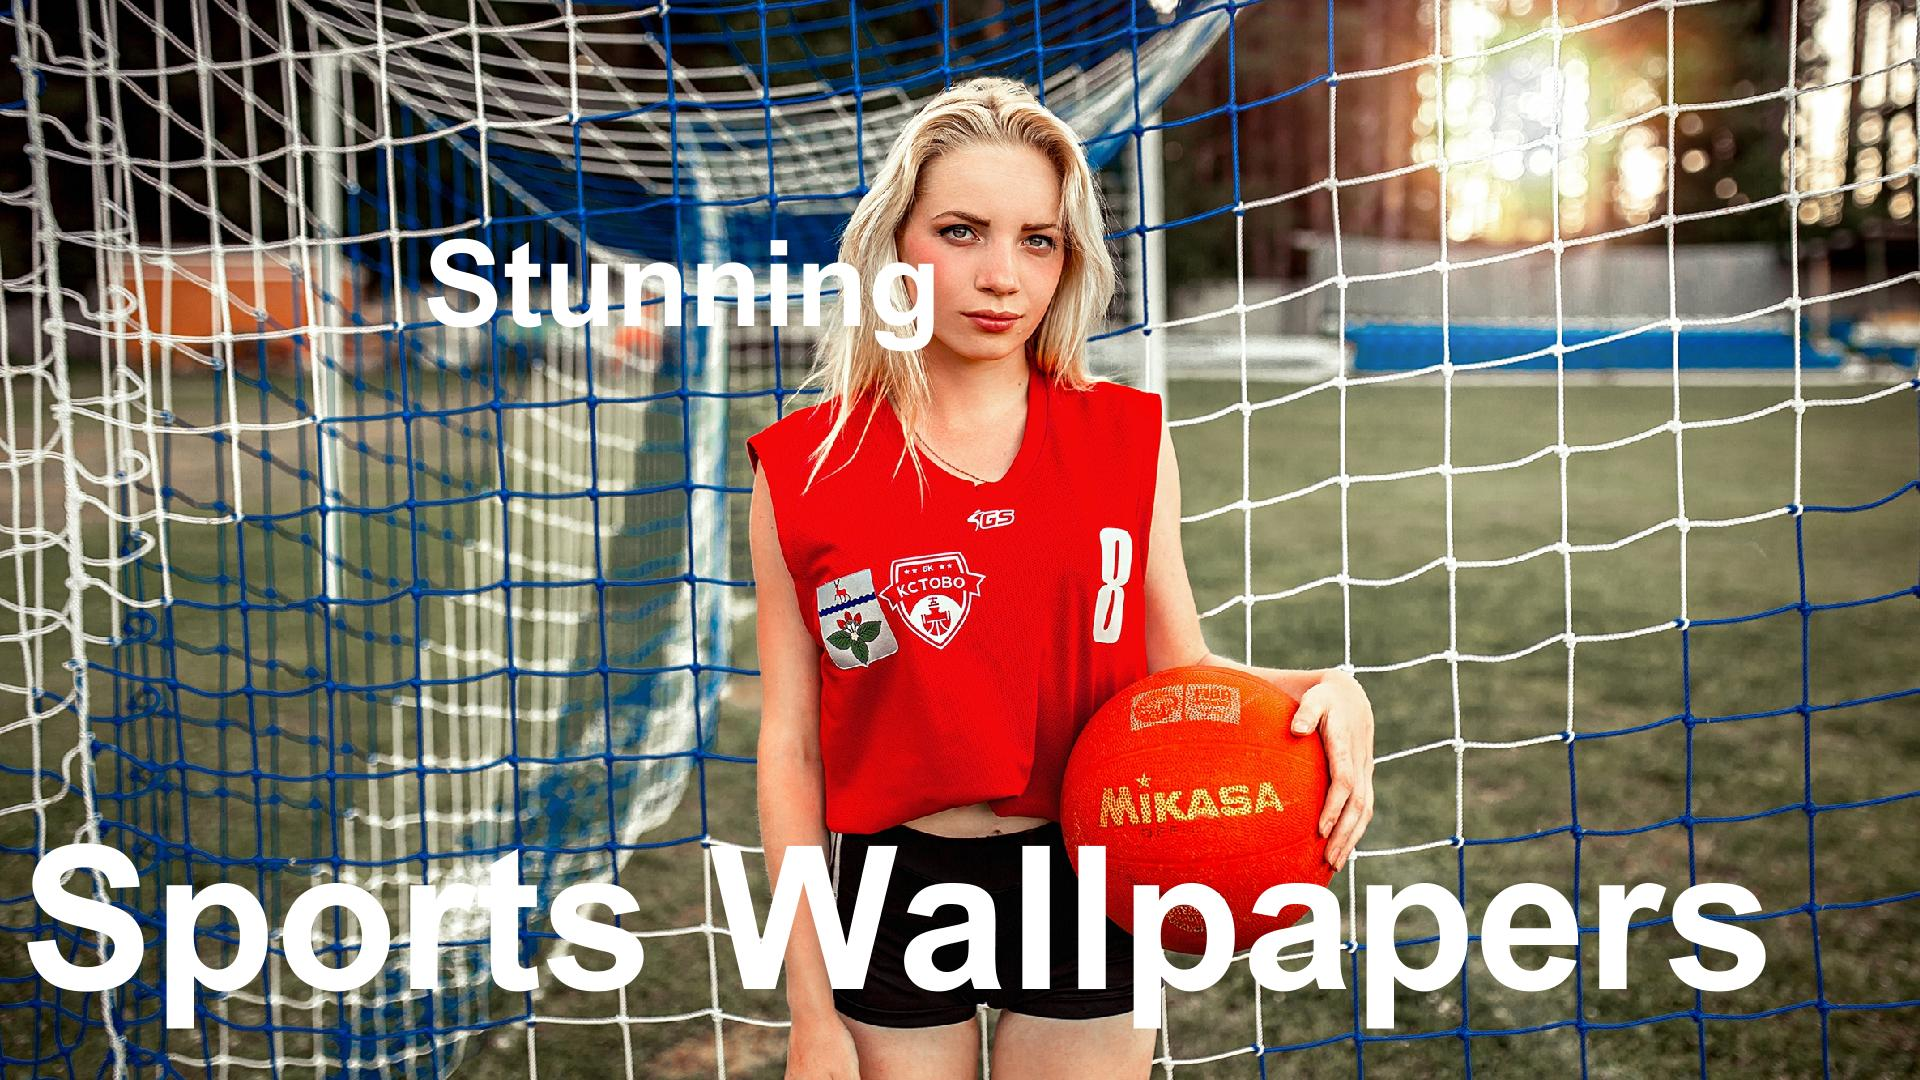 Sports Wallpapers With Free Editor For Android Apk Download